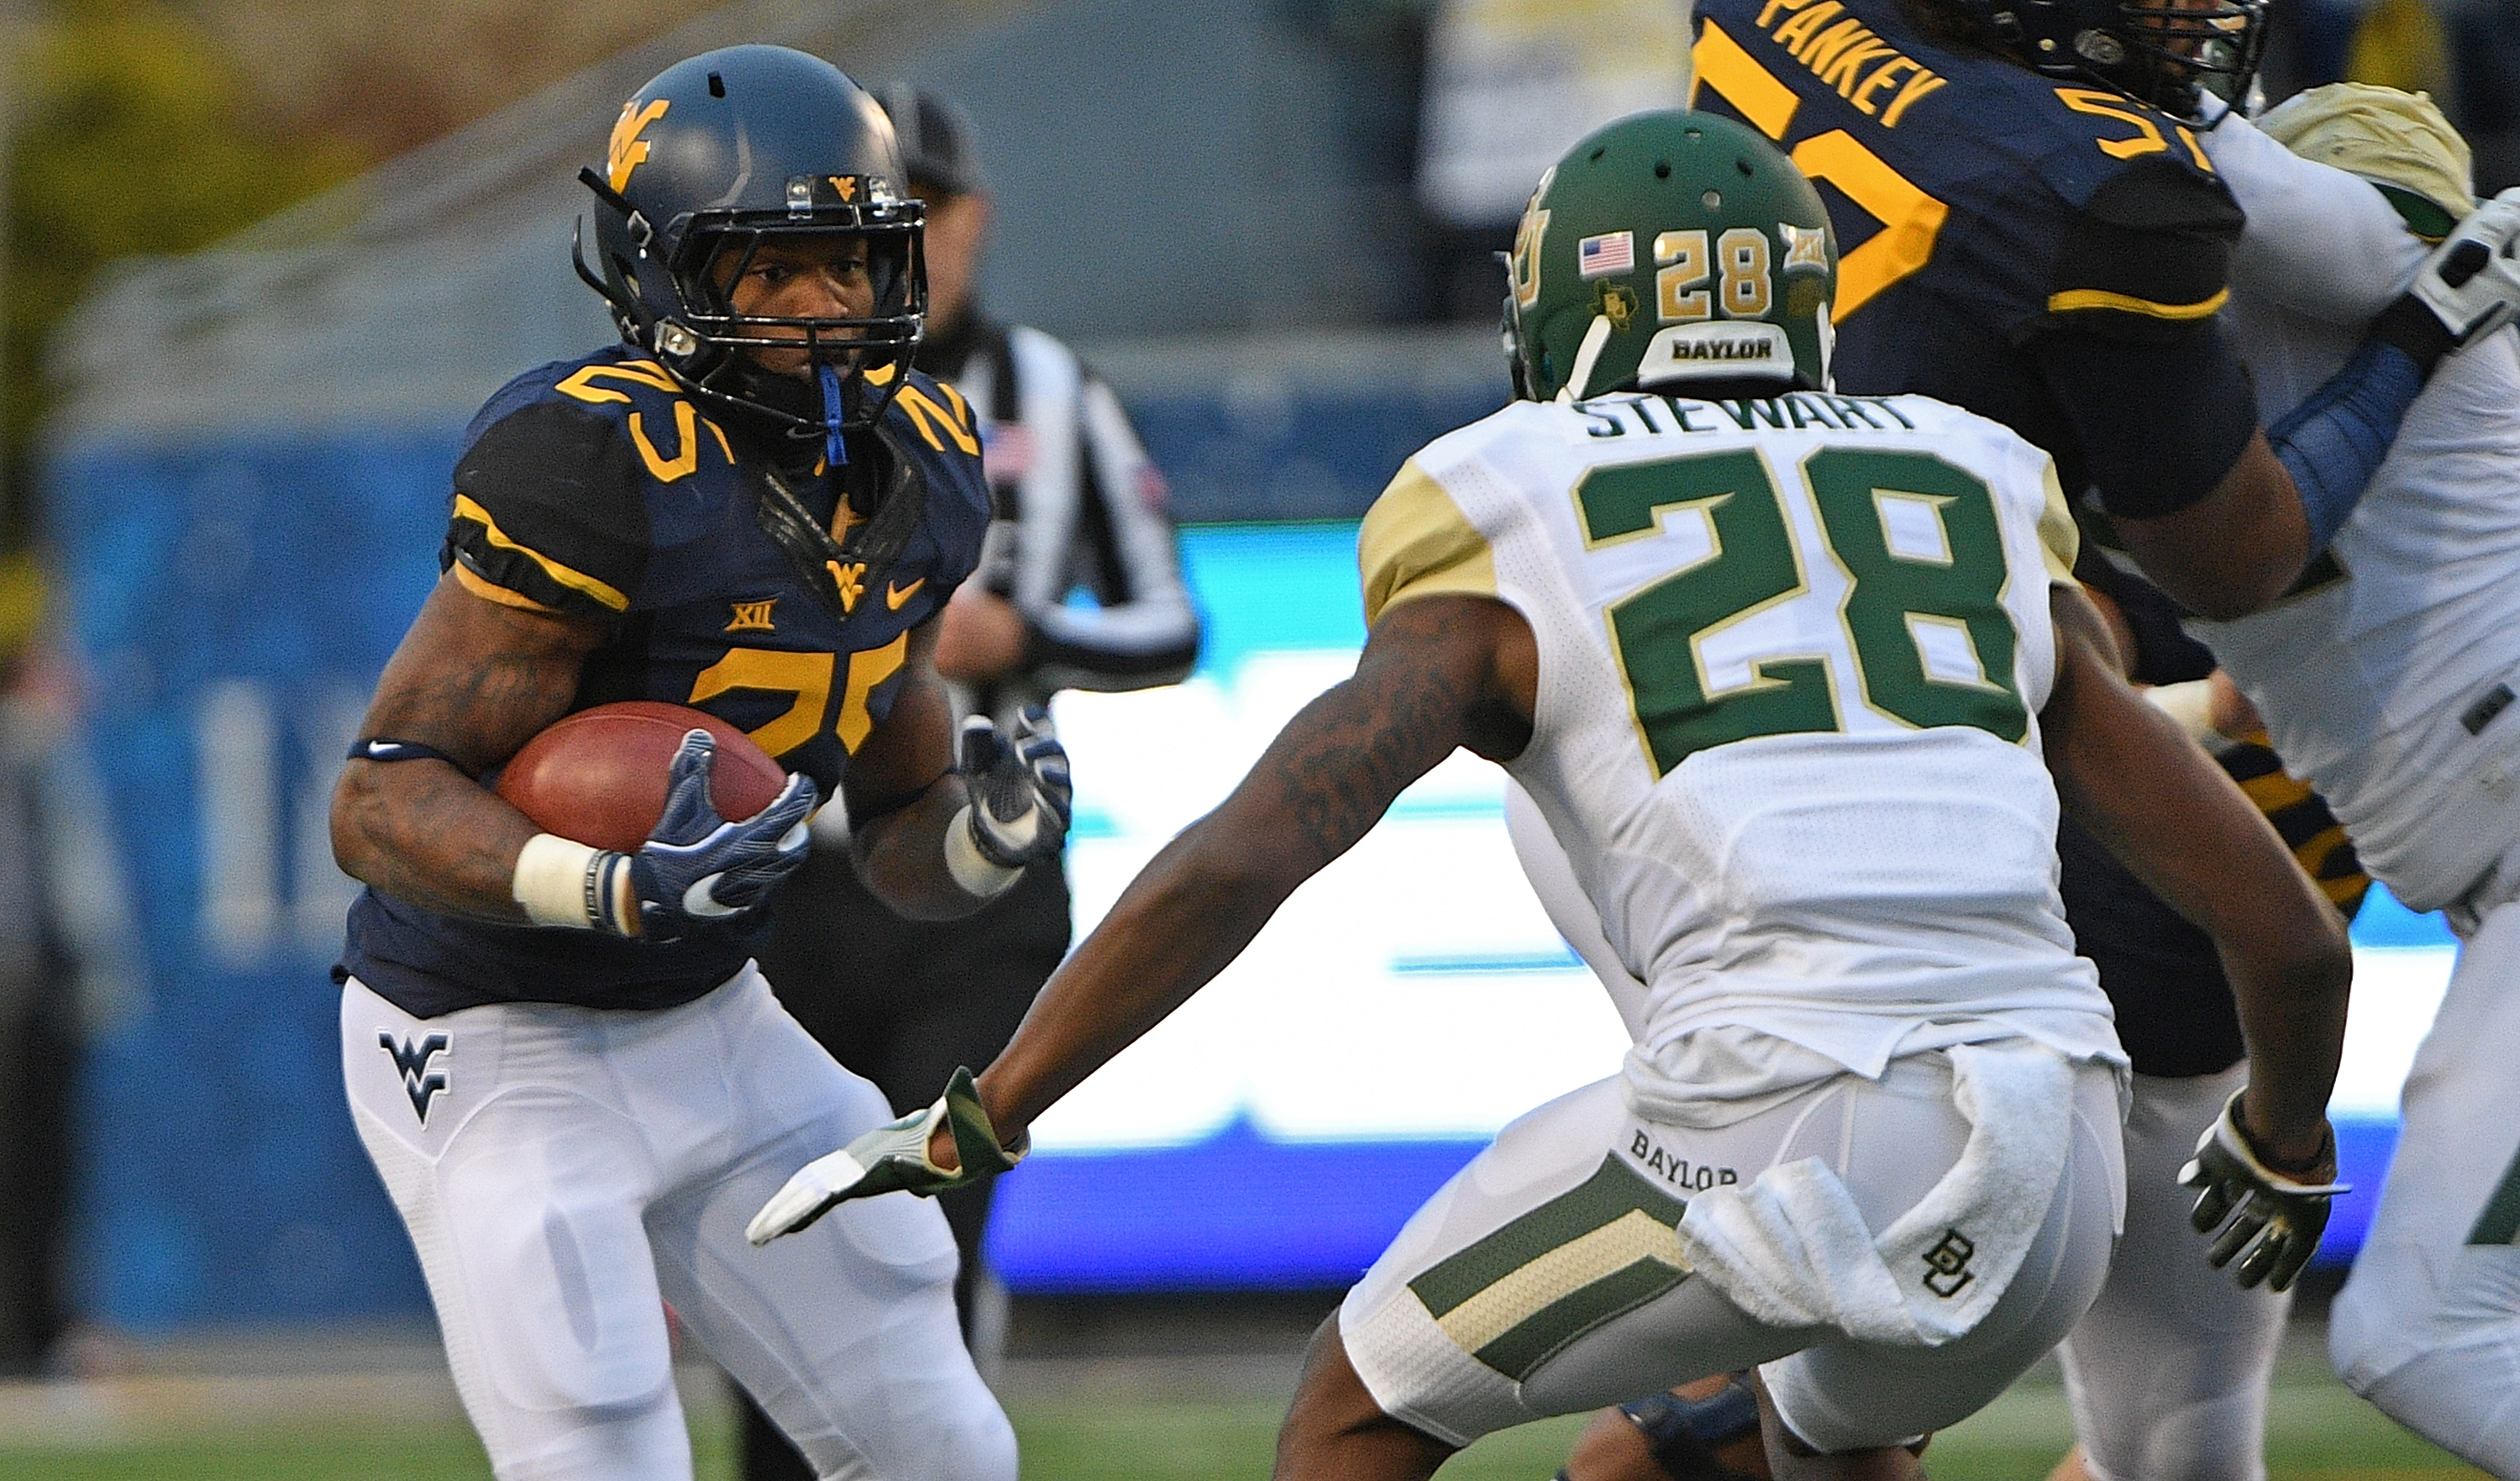 West Virginia vs. Baylor football